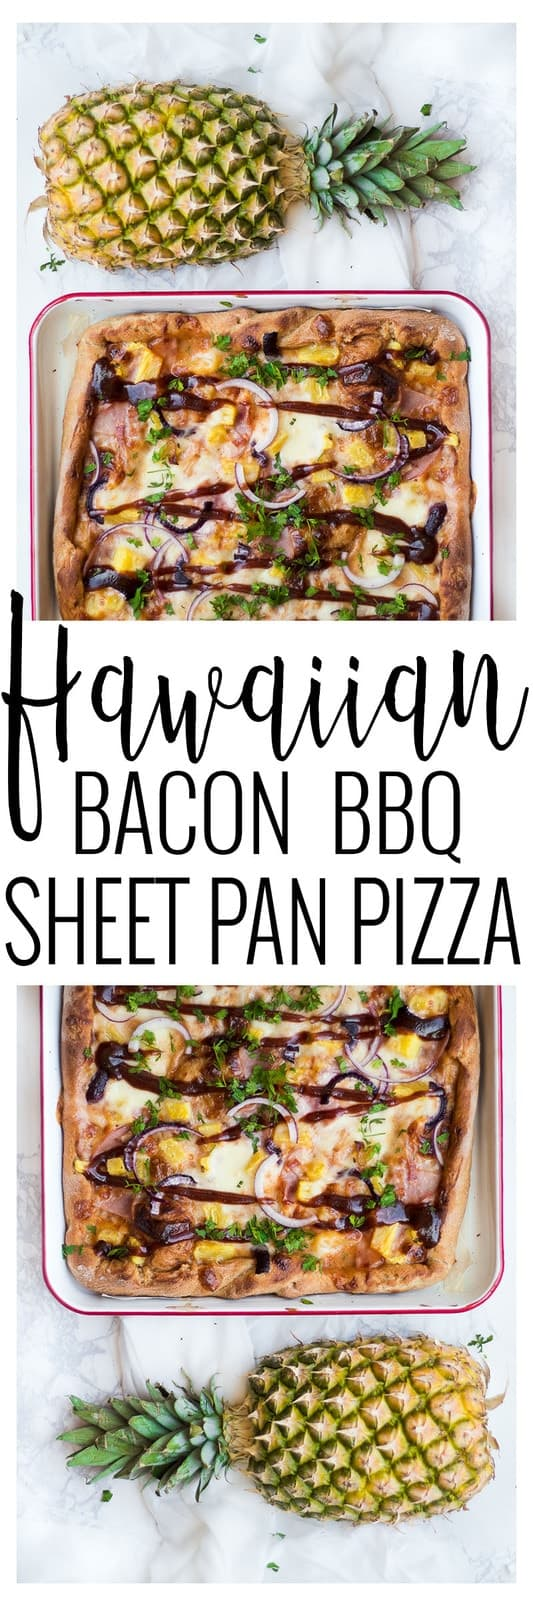 Hawaiian Bacon BBQ Pizza pinterest image